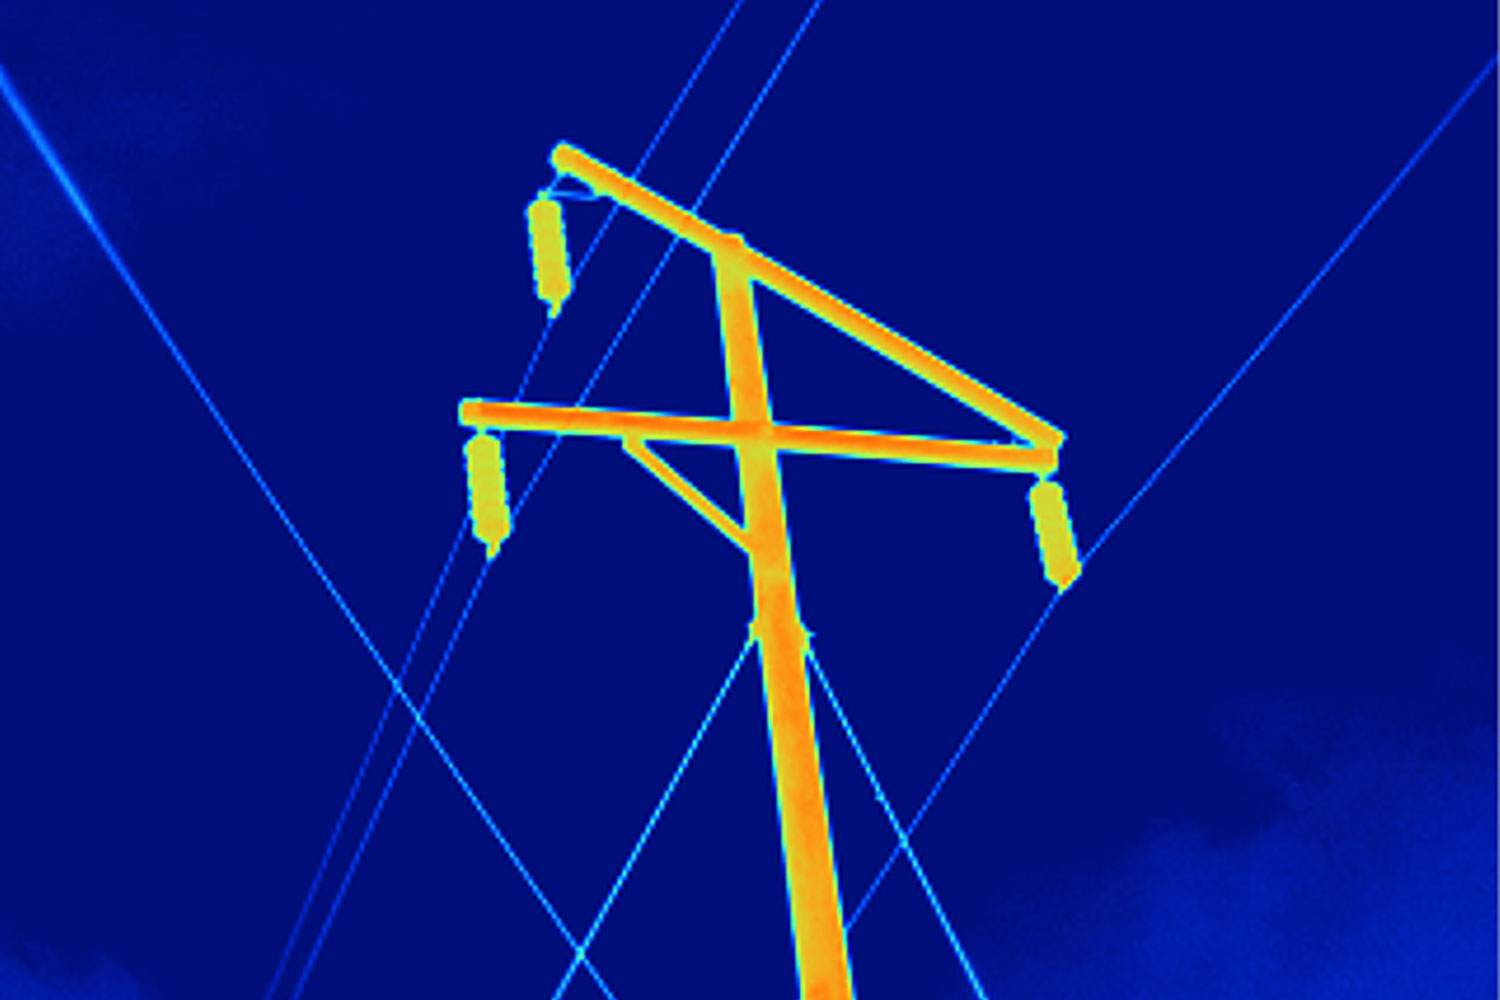 Power line pole taken with standard lens on a TiX560